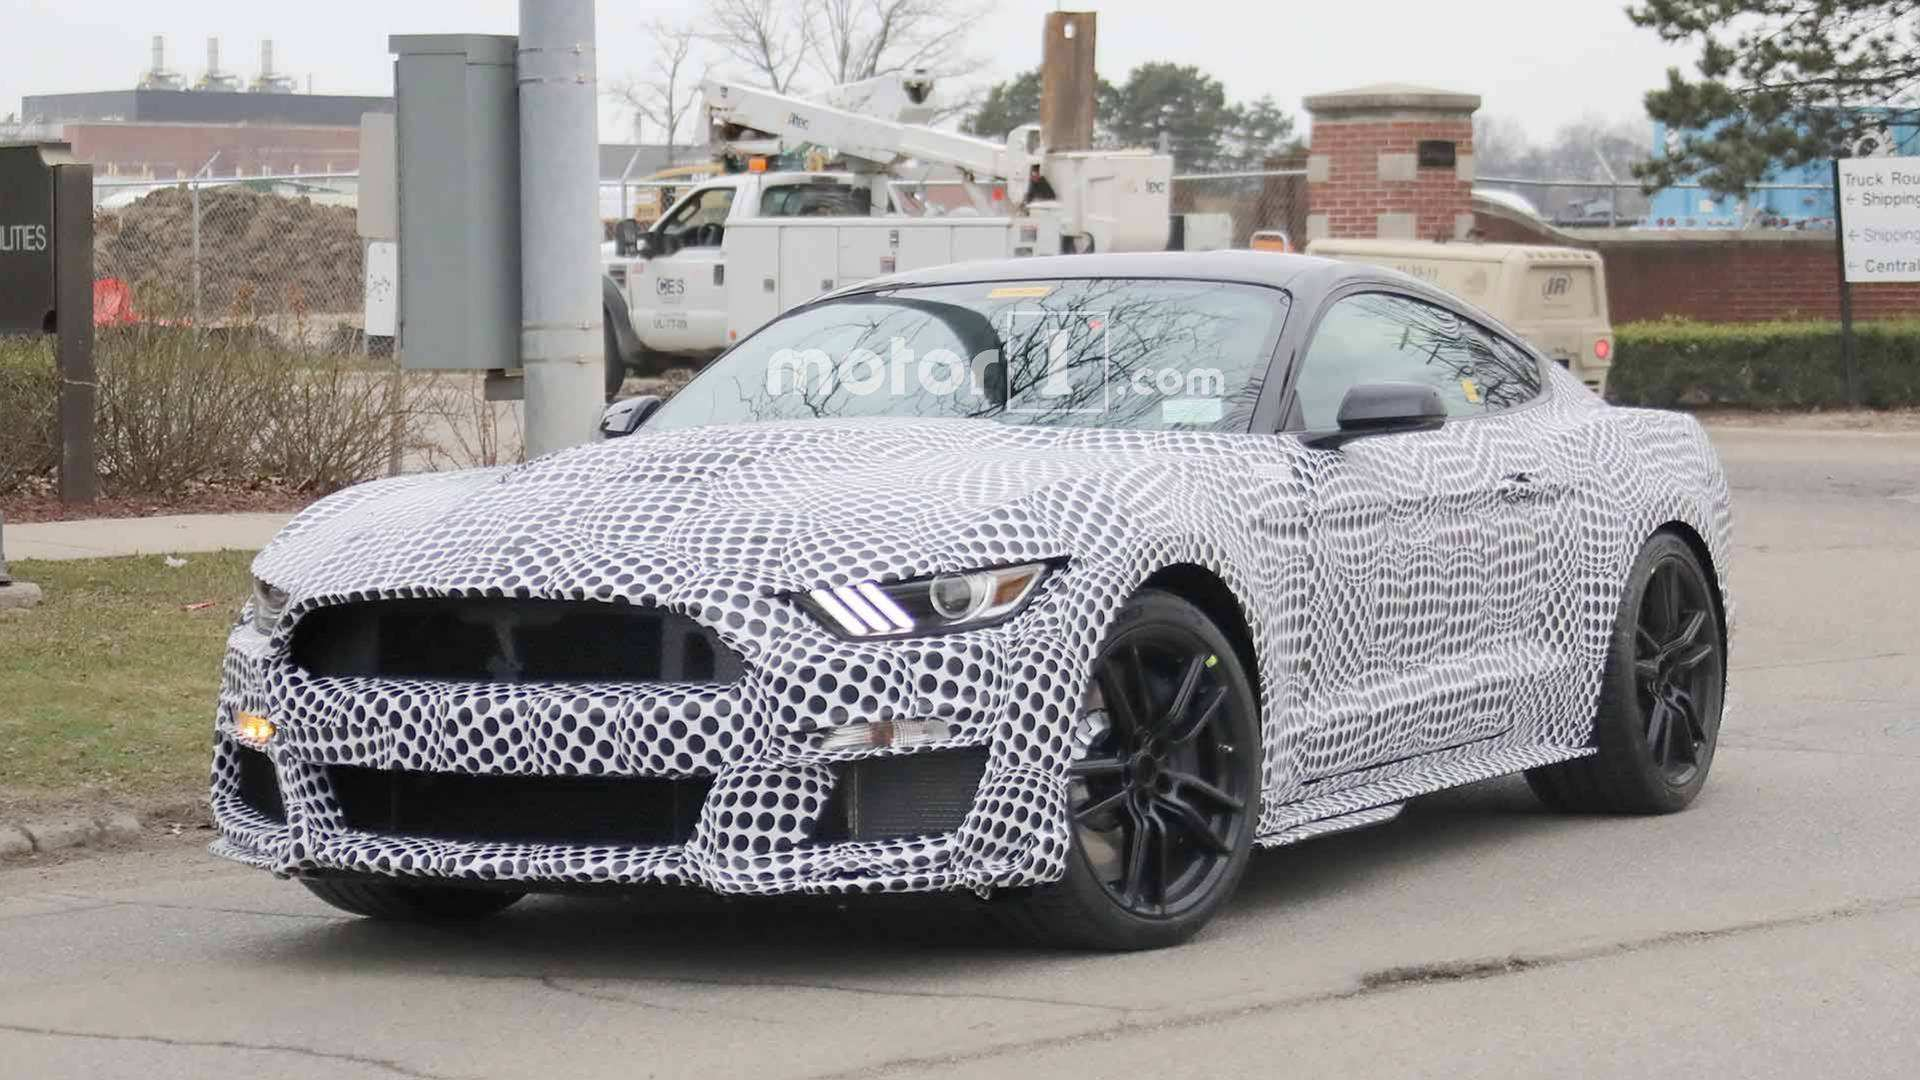 64 Concept of 2020 The Spy Shots Ford Mustang Svt Gt 500 Review with 2020 The Spy Shots Ford Mustang Svt Gt 500